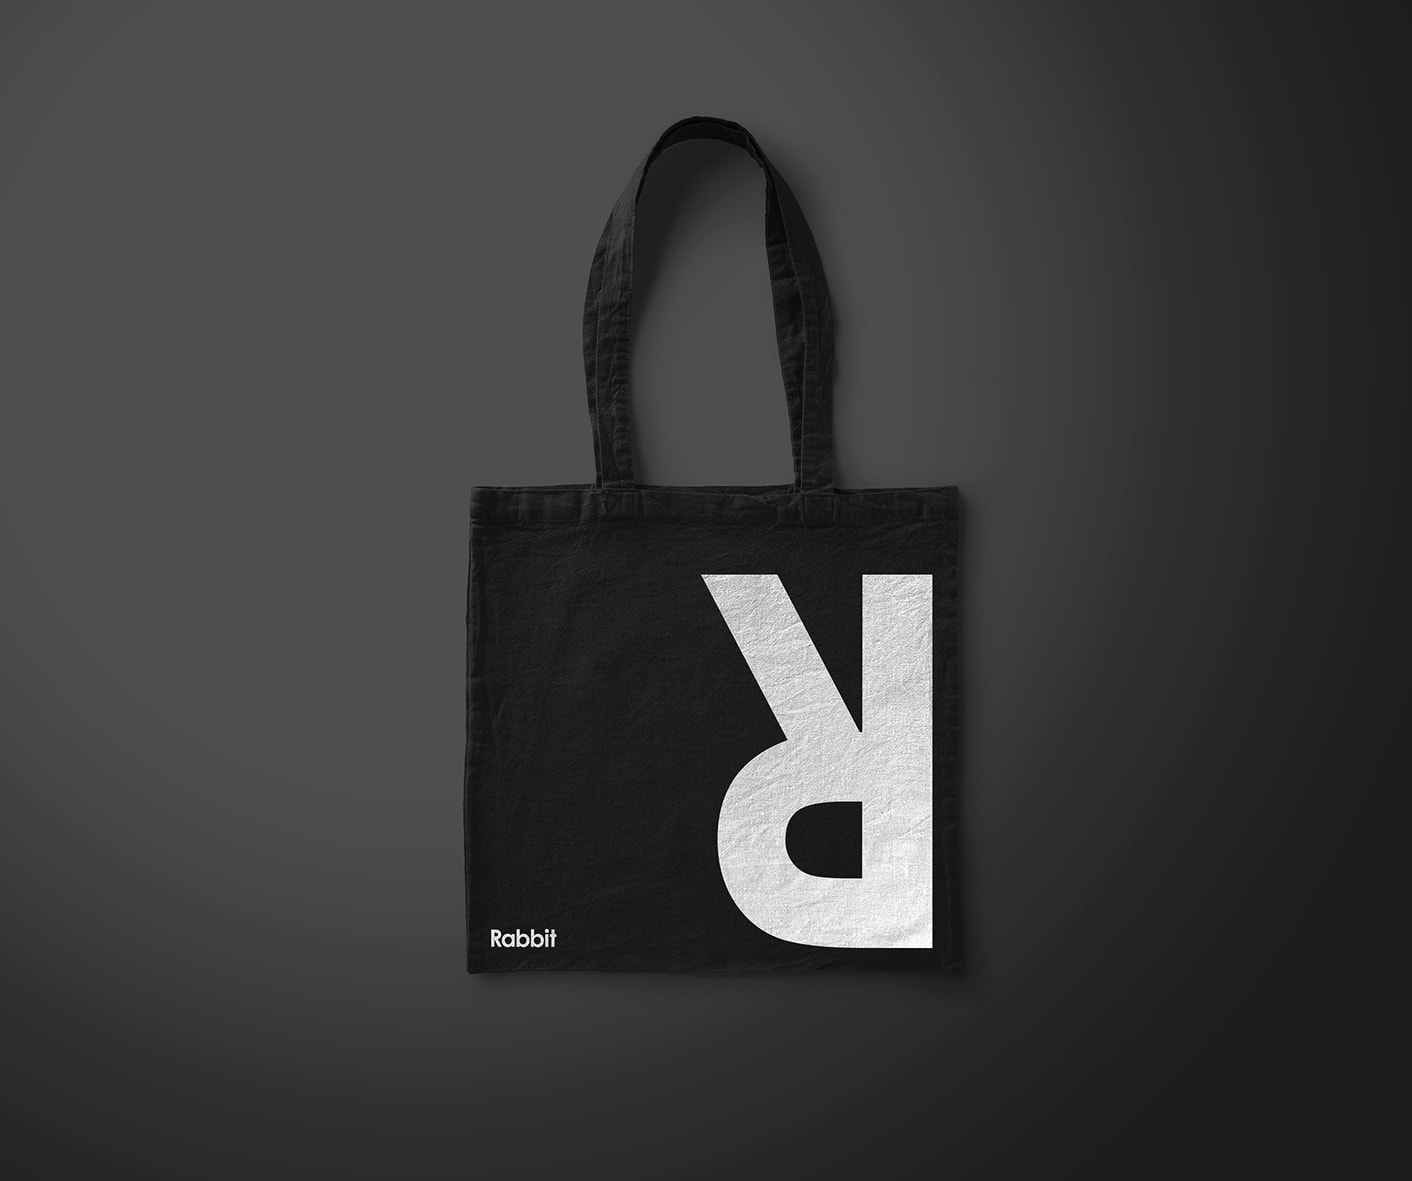 Rabbit Coffee branded tote bag